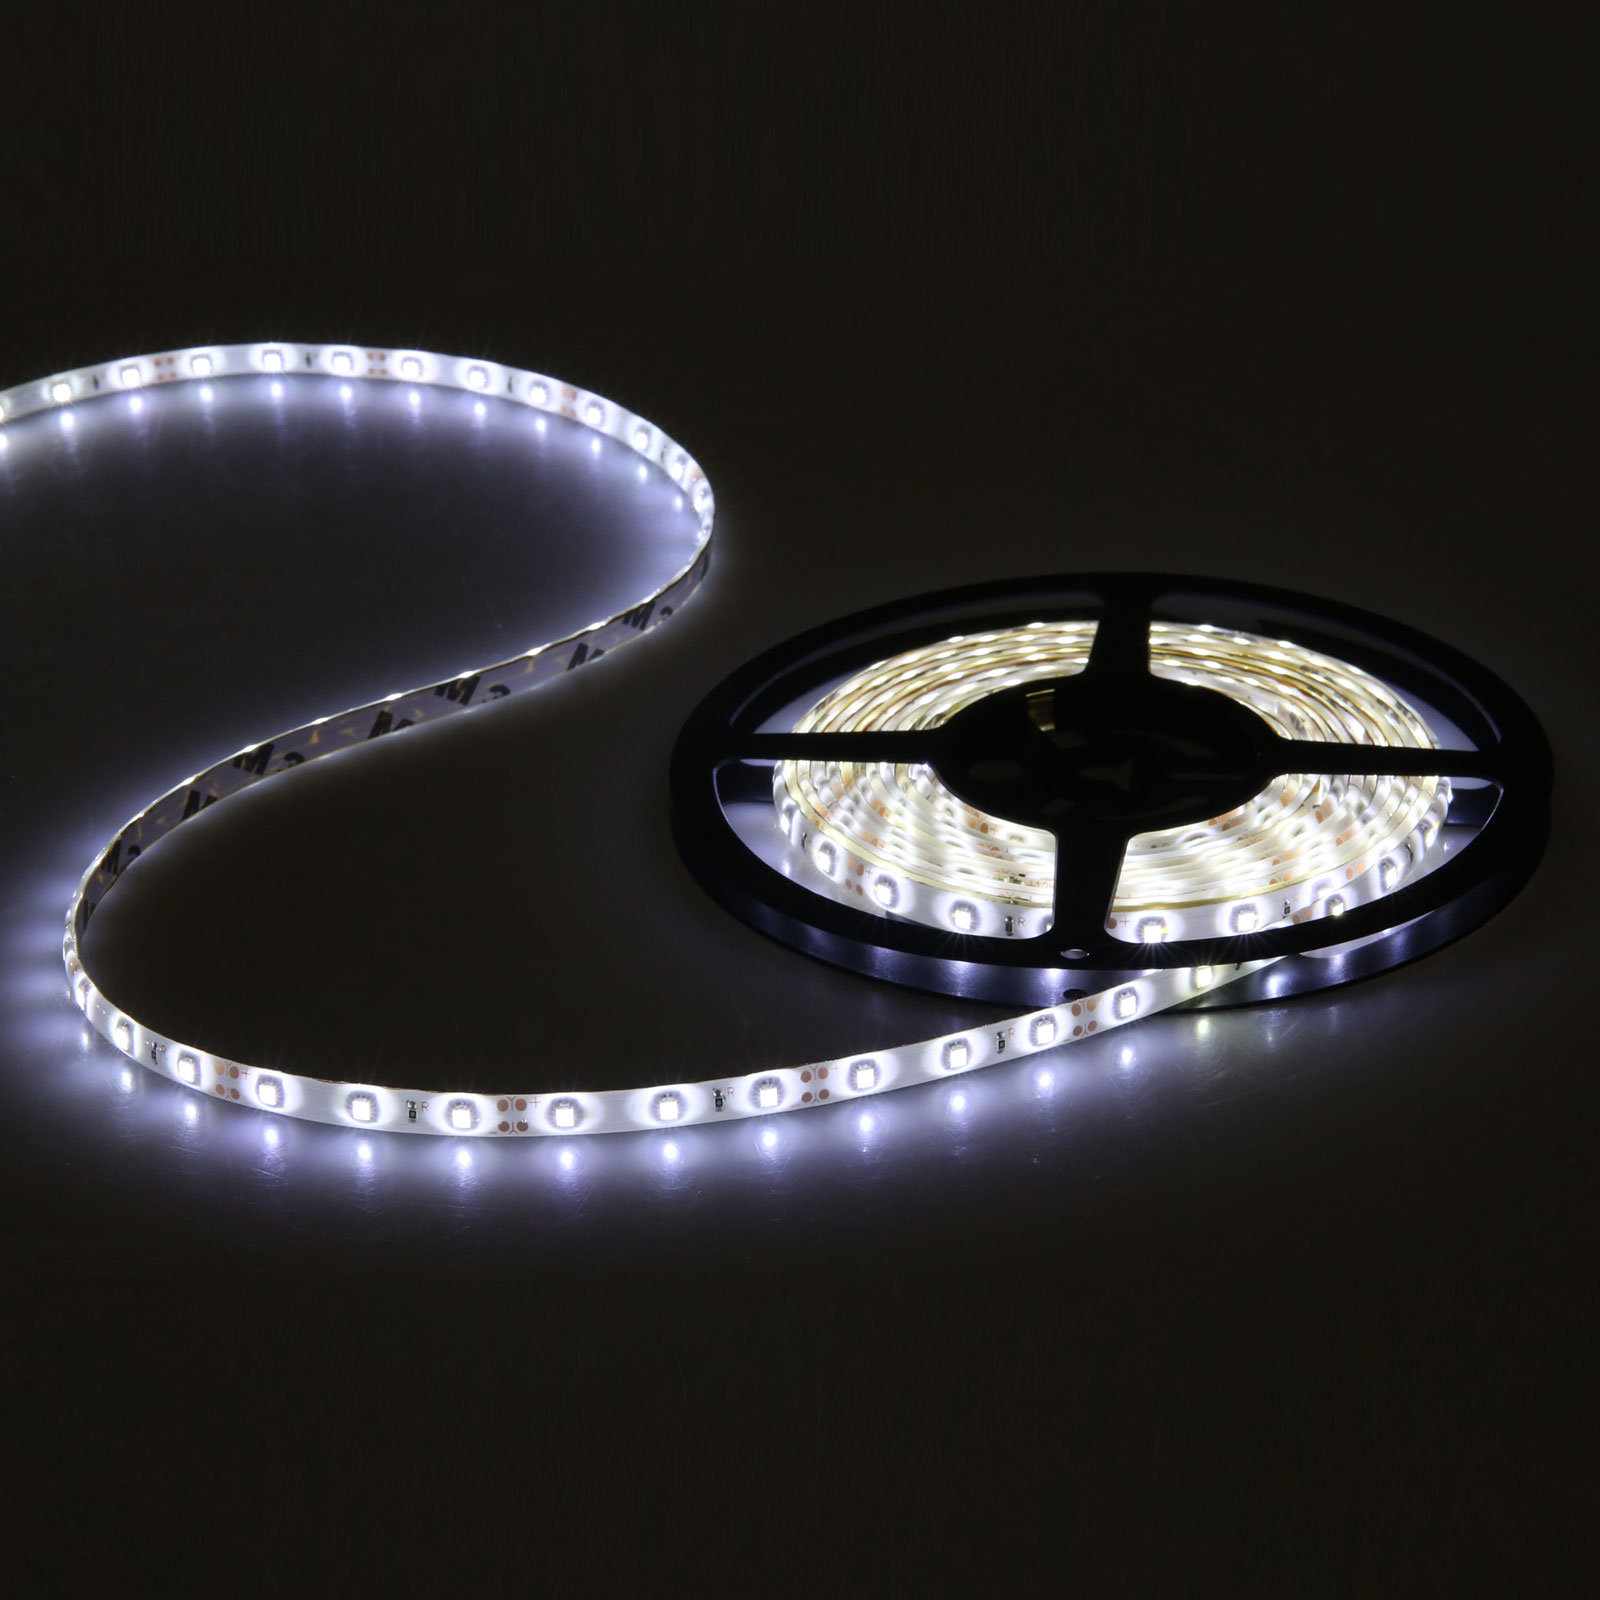 Smd 3528 led strip can be most cost effective light Cool things to do with led strips